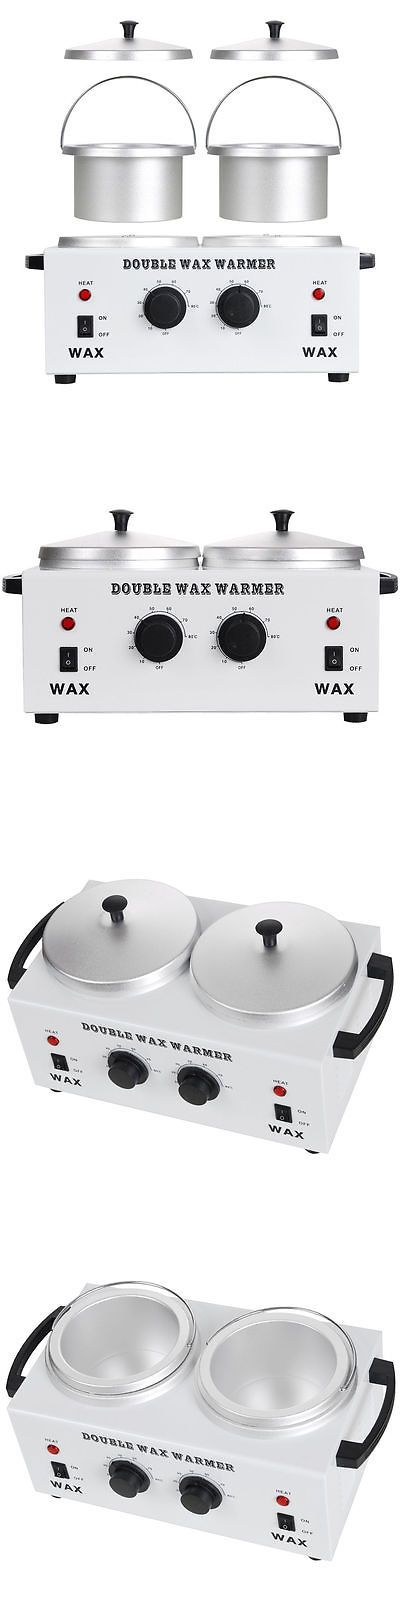 Waxing Supplies: Pro Double Wax Warmer Electric Heater Dual Hot Facial Skin Care Equipment Spa -> BUY IT NOW ONLY: $35.9 on eBay!